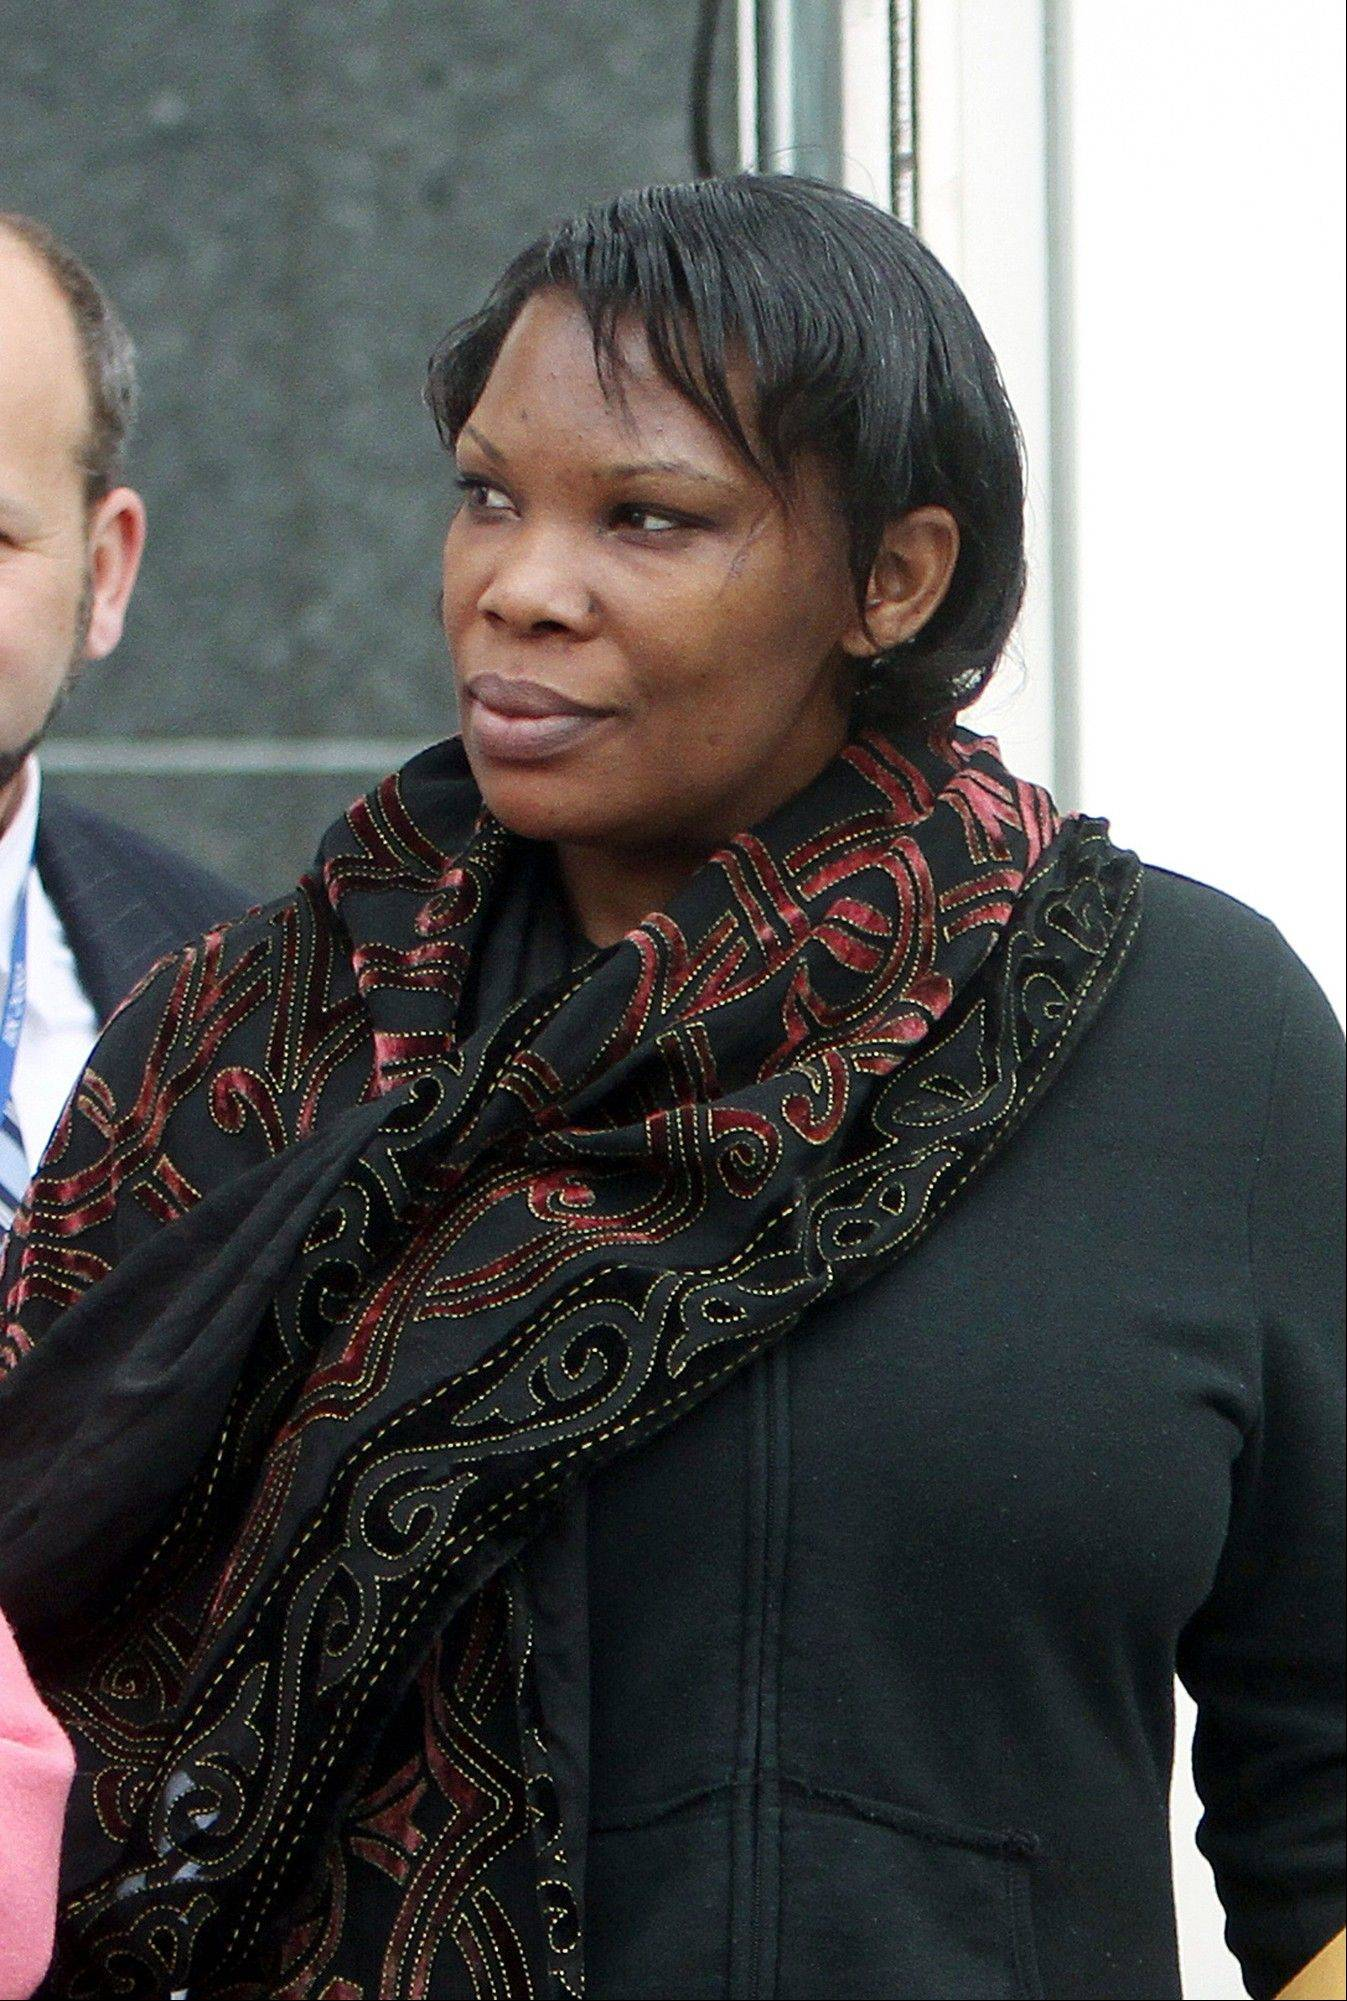 In this Thursday, April 12, 2012 file photo, Beatrice Munyenyezi leaves the federal court in Concord, N.H. A federal judge Monday, July 15, 2013, sentenced her to 10 years in prison after she was convicted of lying about her role in the 1994 Rwanda genocide to come to the US and eventually obtain citizenship.